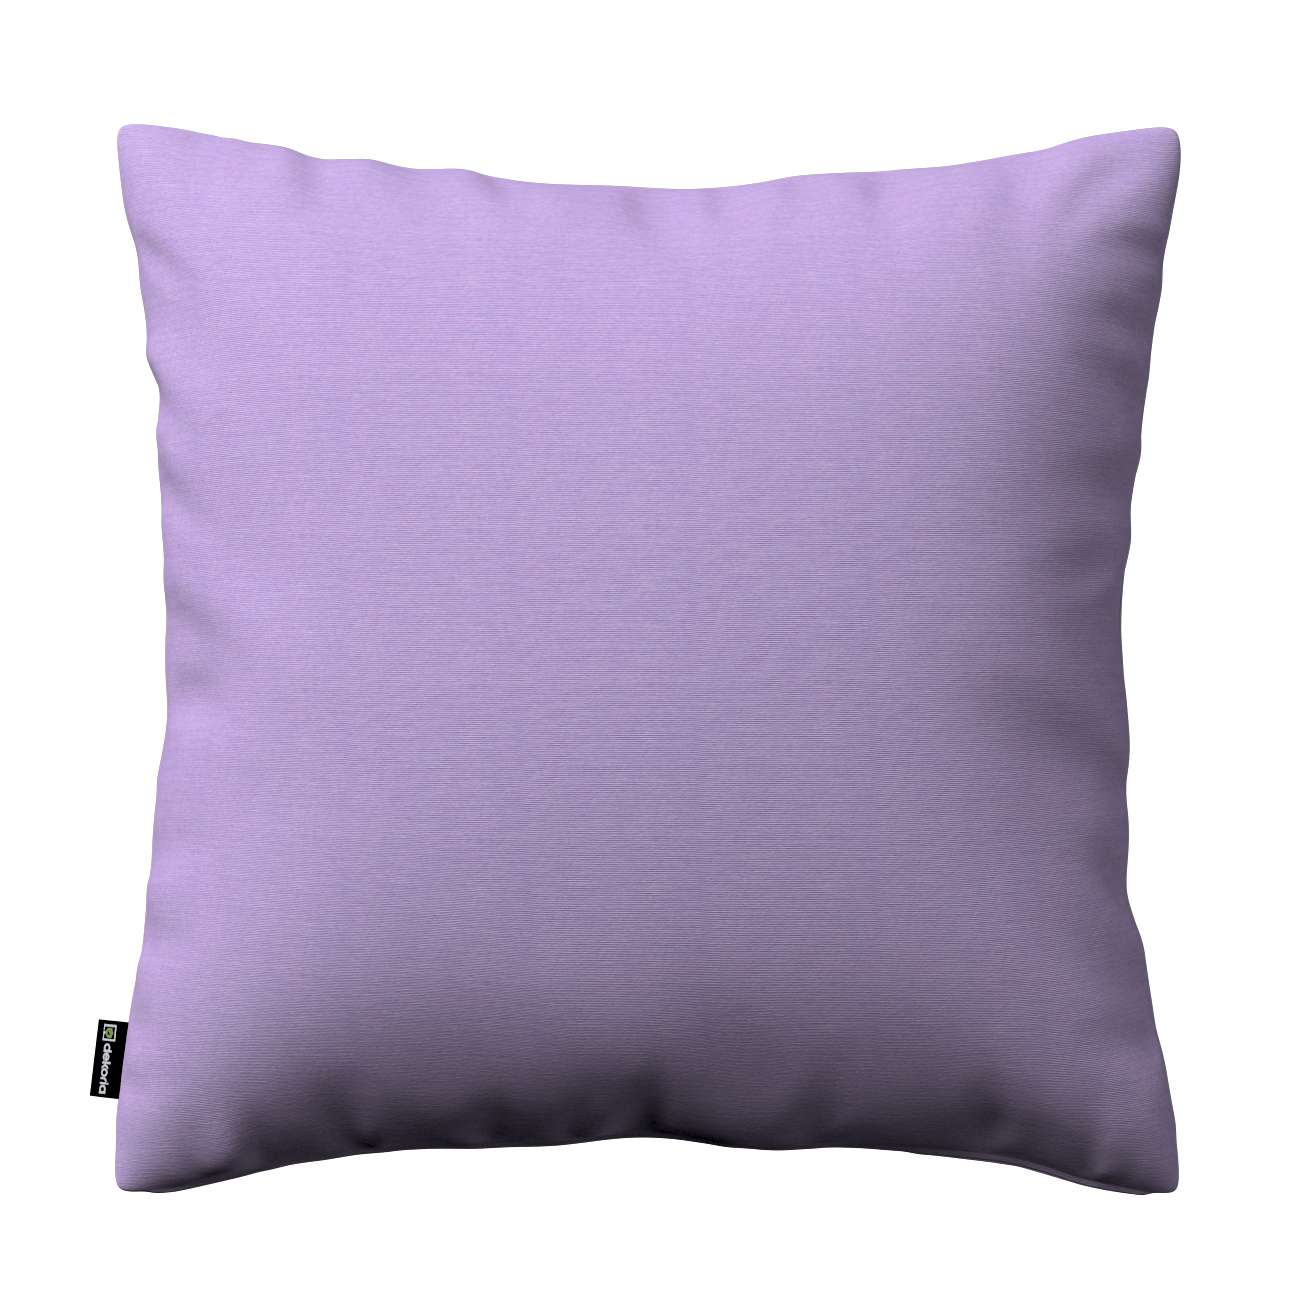 Kinga cushion cover in collection Jupiter, fabric: 127-74